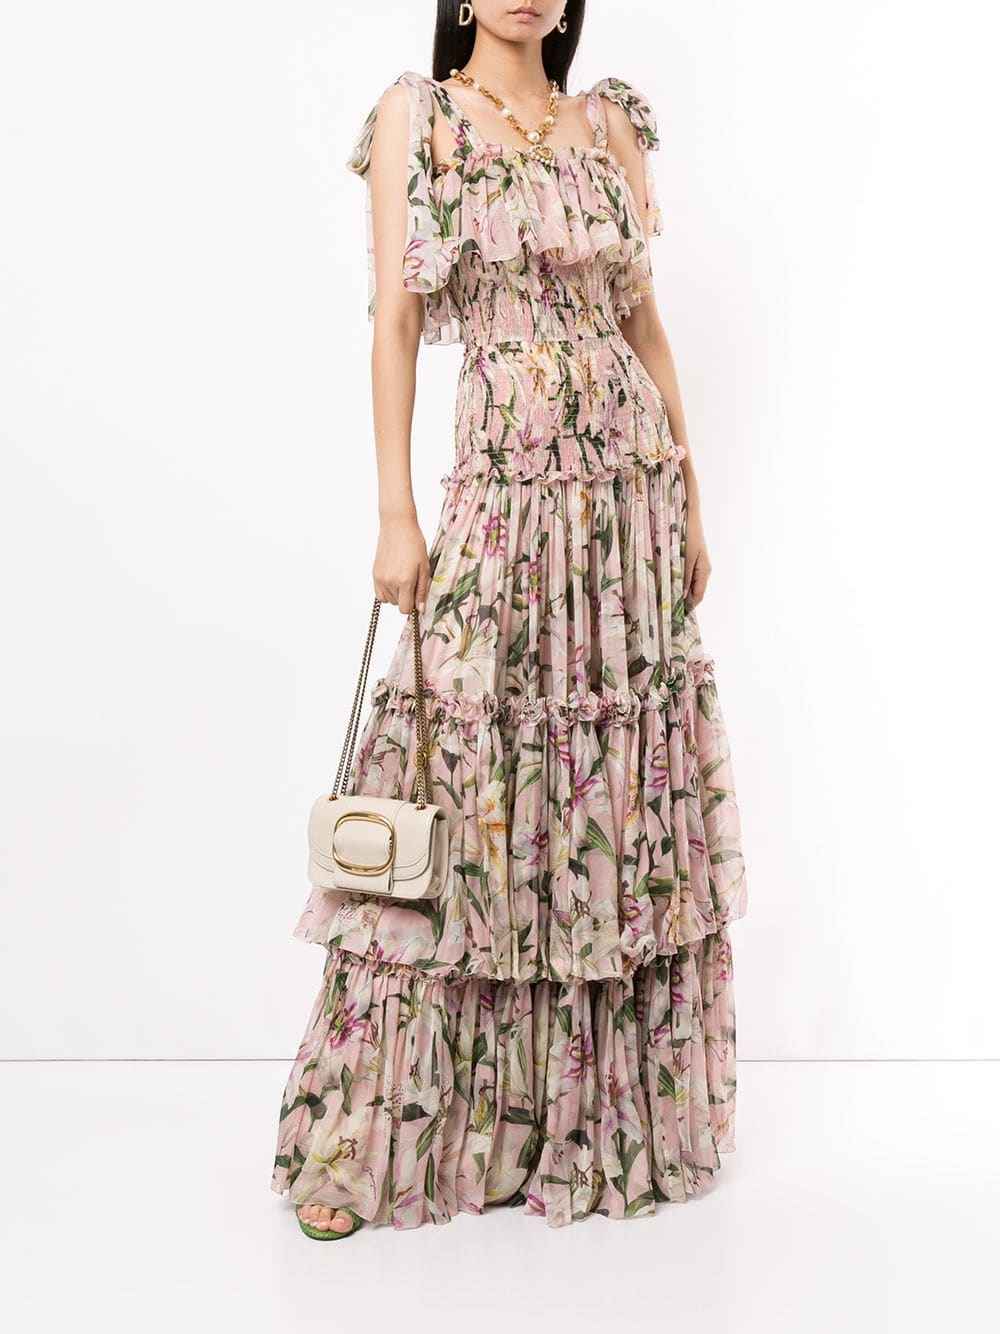 DOLCE & GABBANA Layered Lilies Dress